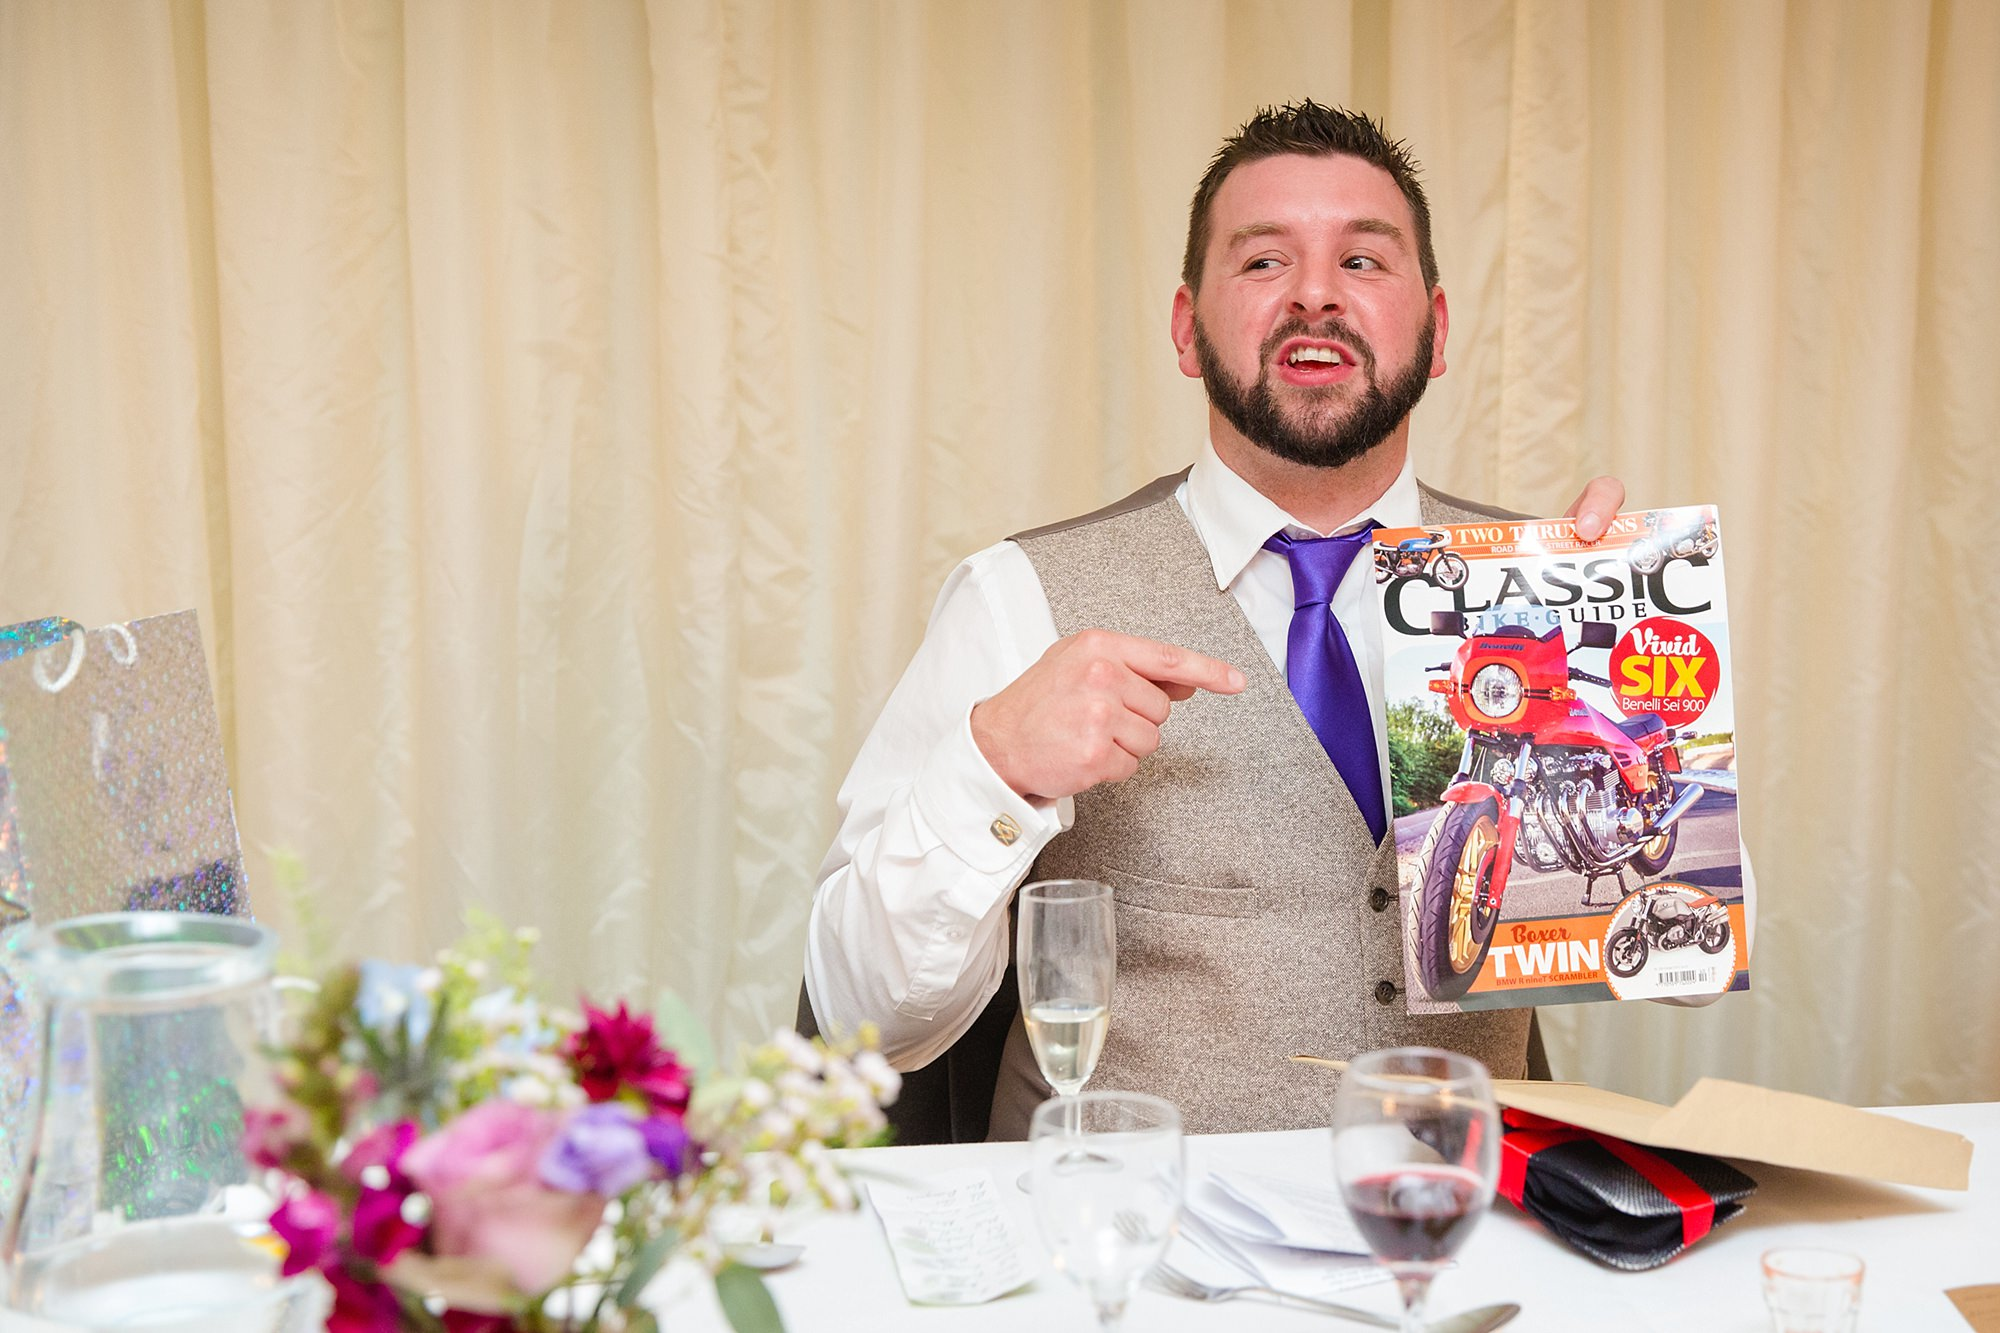 A fun wedding gift from best man shown off by the groom